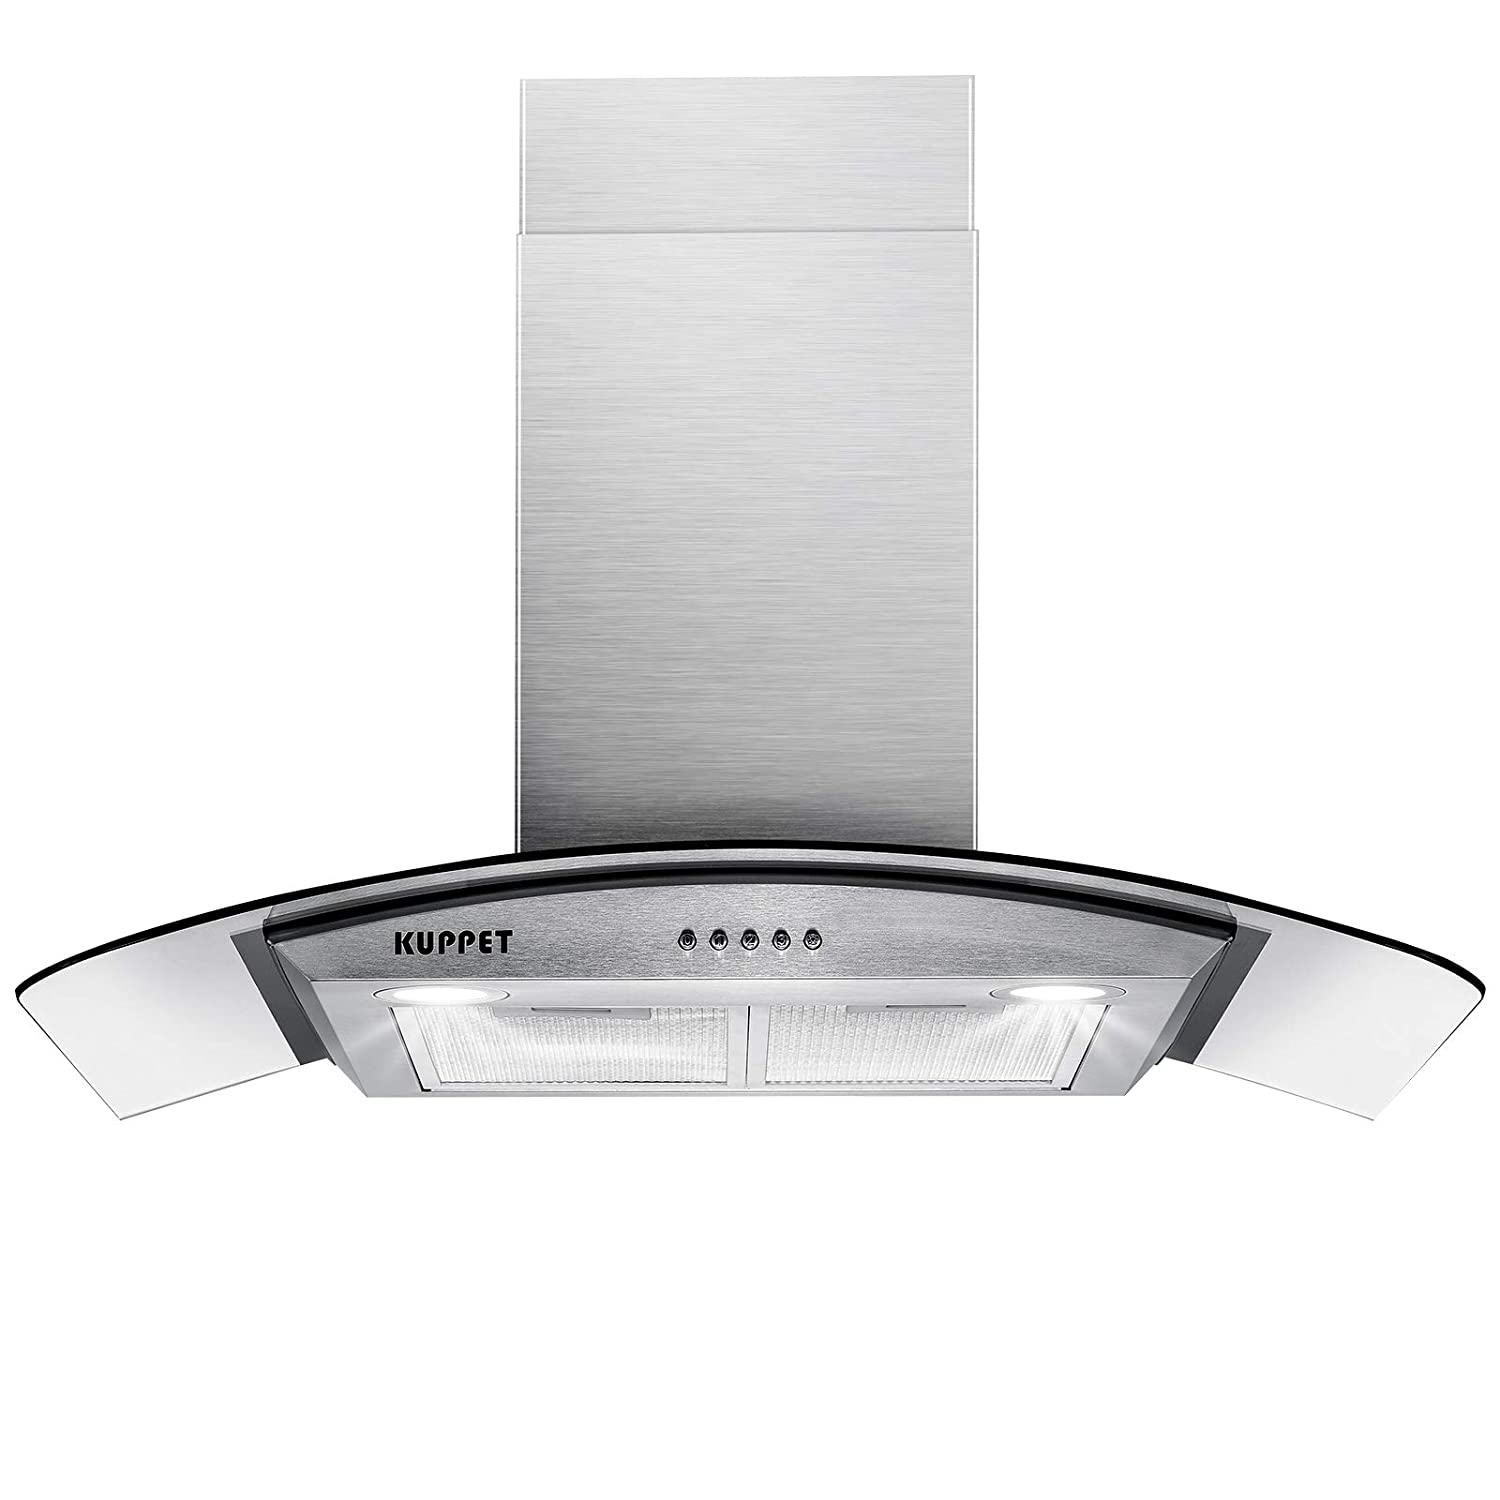 "KUPPET Pro-Style 30"" Wall Mount Range Hood, Tempered Glass Ducted Exhaust Vent, High-End LED Lights, Aluminum Mesh Filter, Push Button 3 speed controls, Stainless Steel"